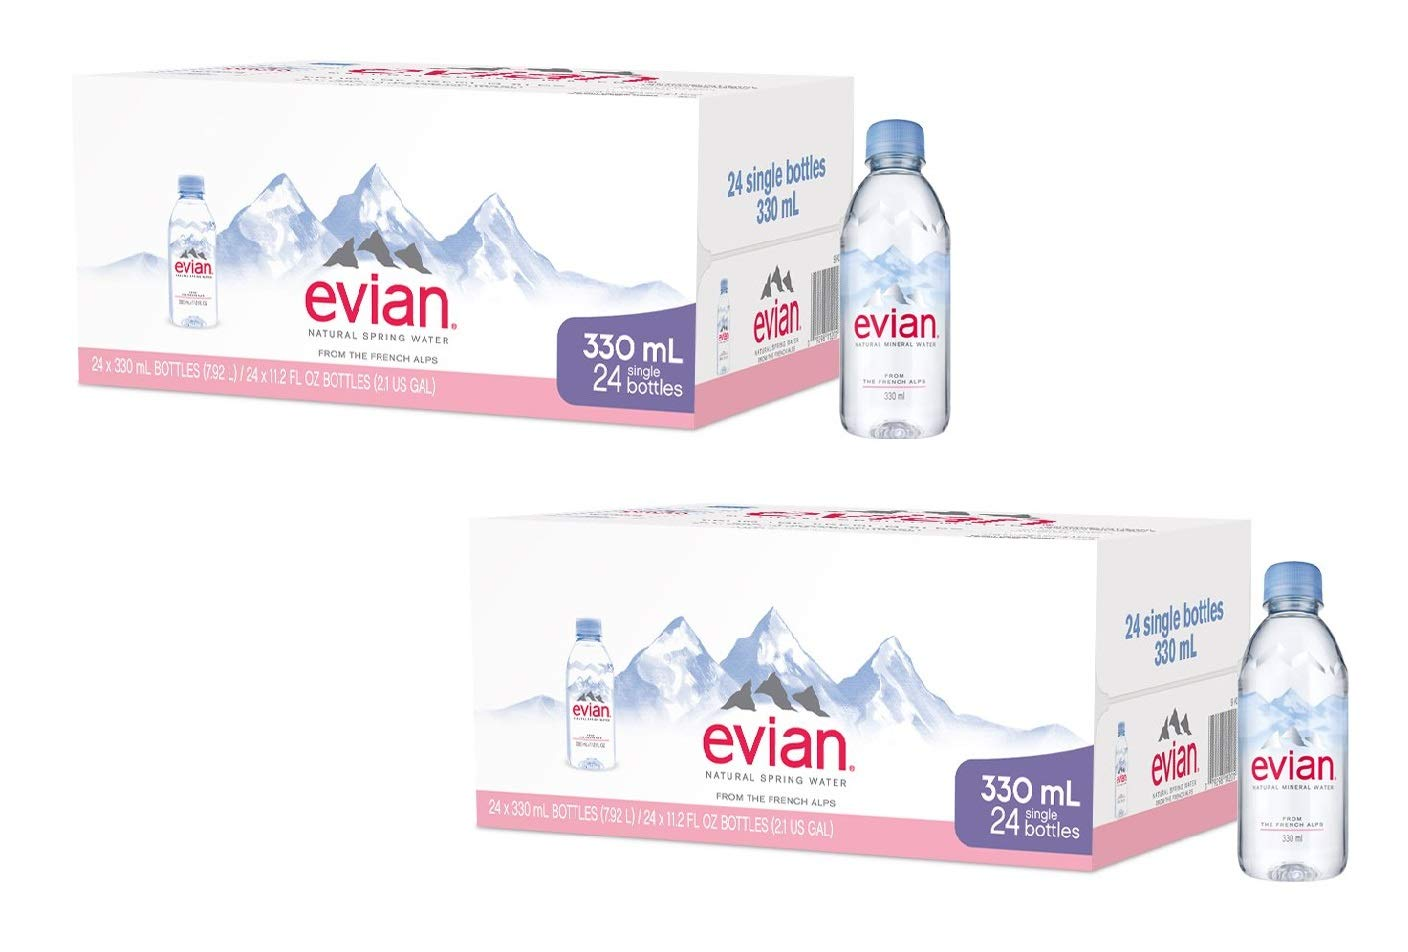 evian Natural Spring Water One Case of 24 Individual 330 ml (11.2 Fl. Oz.) Mini-Bottles, Naturally Filtered Spring Water Small Water Bottles (2 Pack) by evian (Image #1)